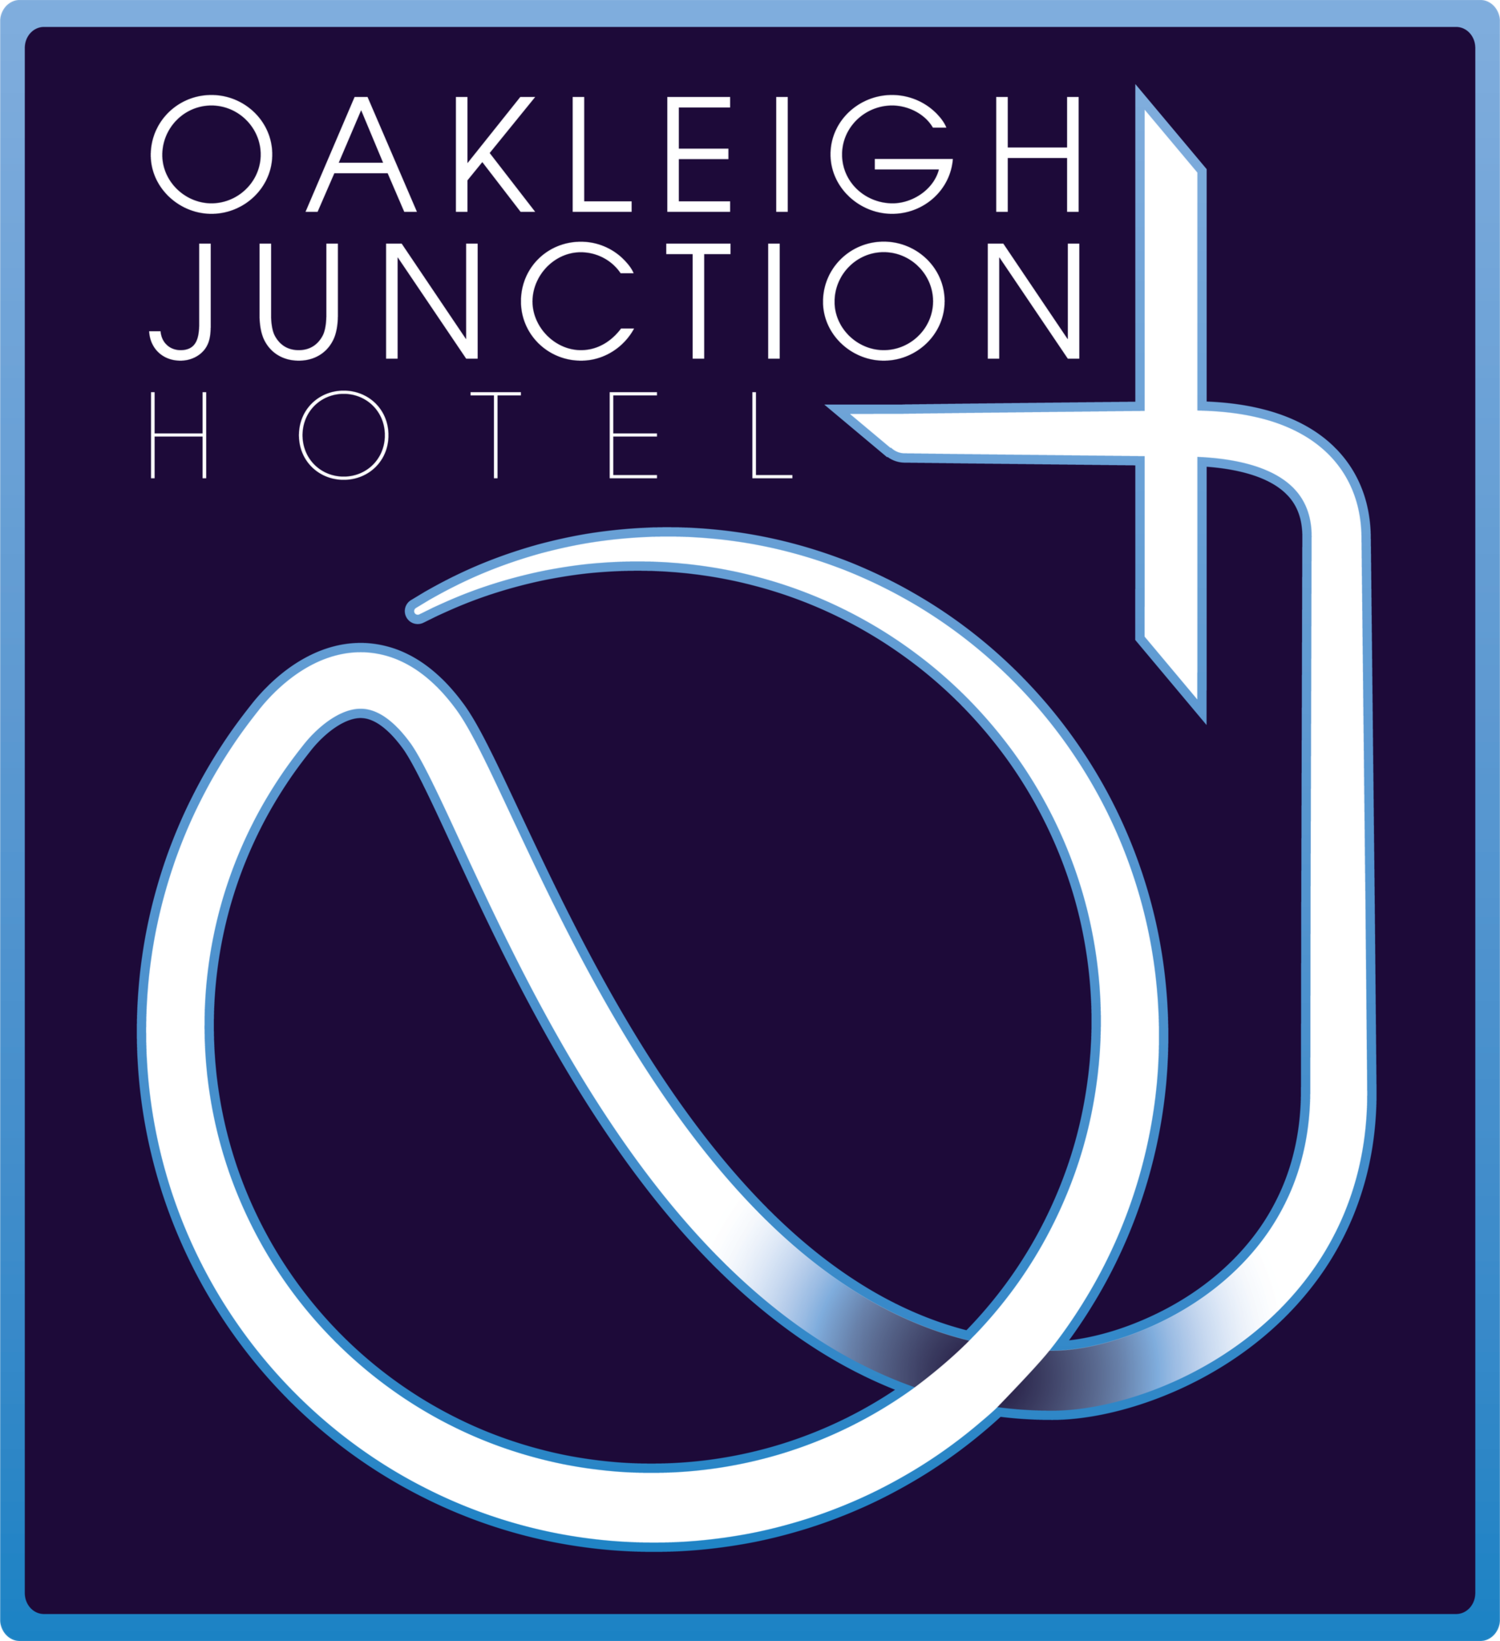 Oakleigh Junction Hotel, Oakleigh, VIC